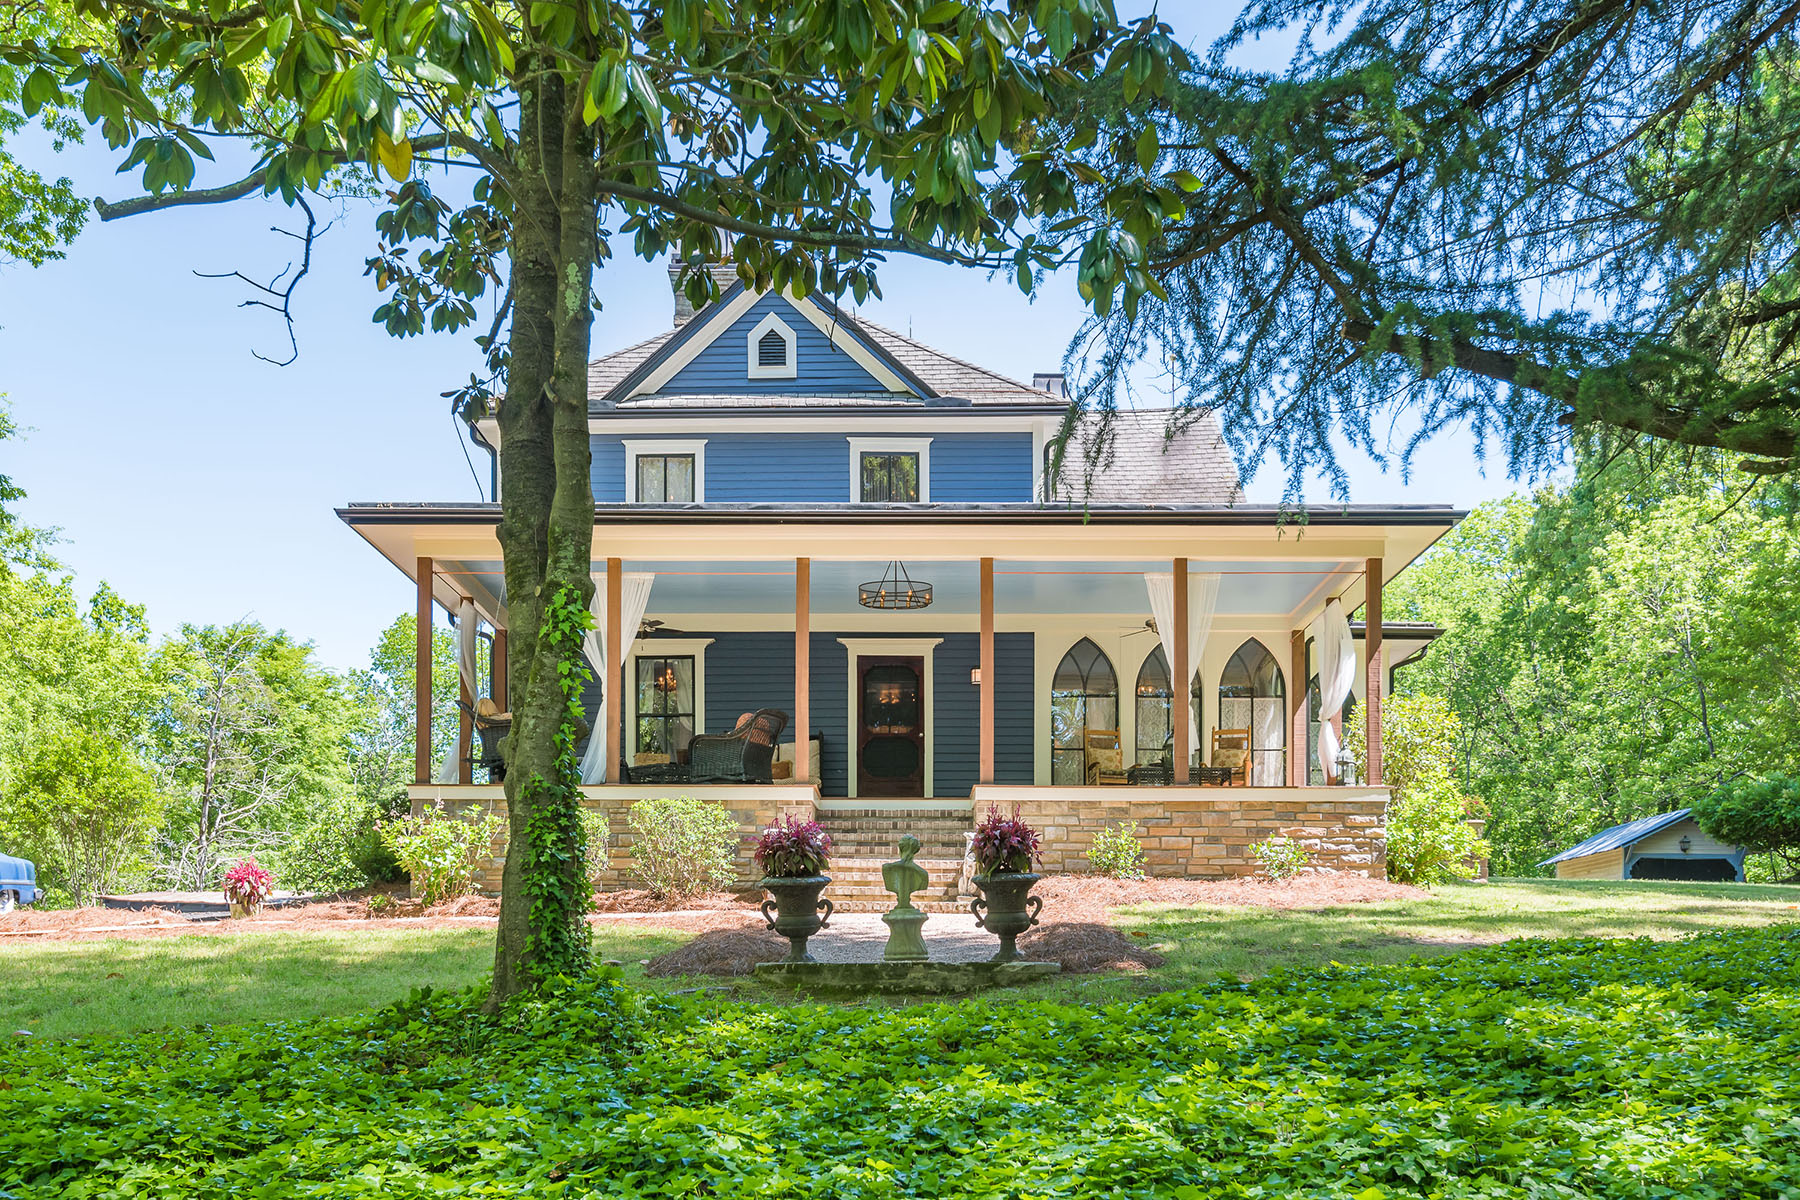 Single Family Homes for Sale at 1900 Gold Hill Rd Concord, North Carolina 28025 United States